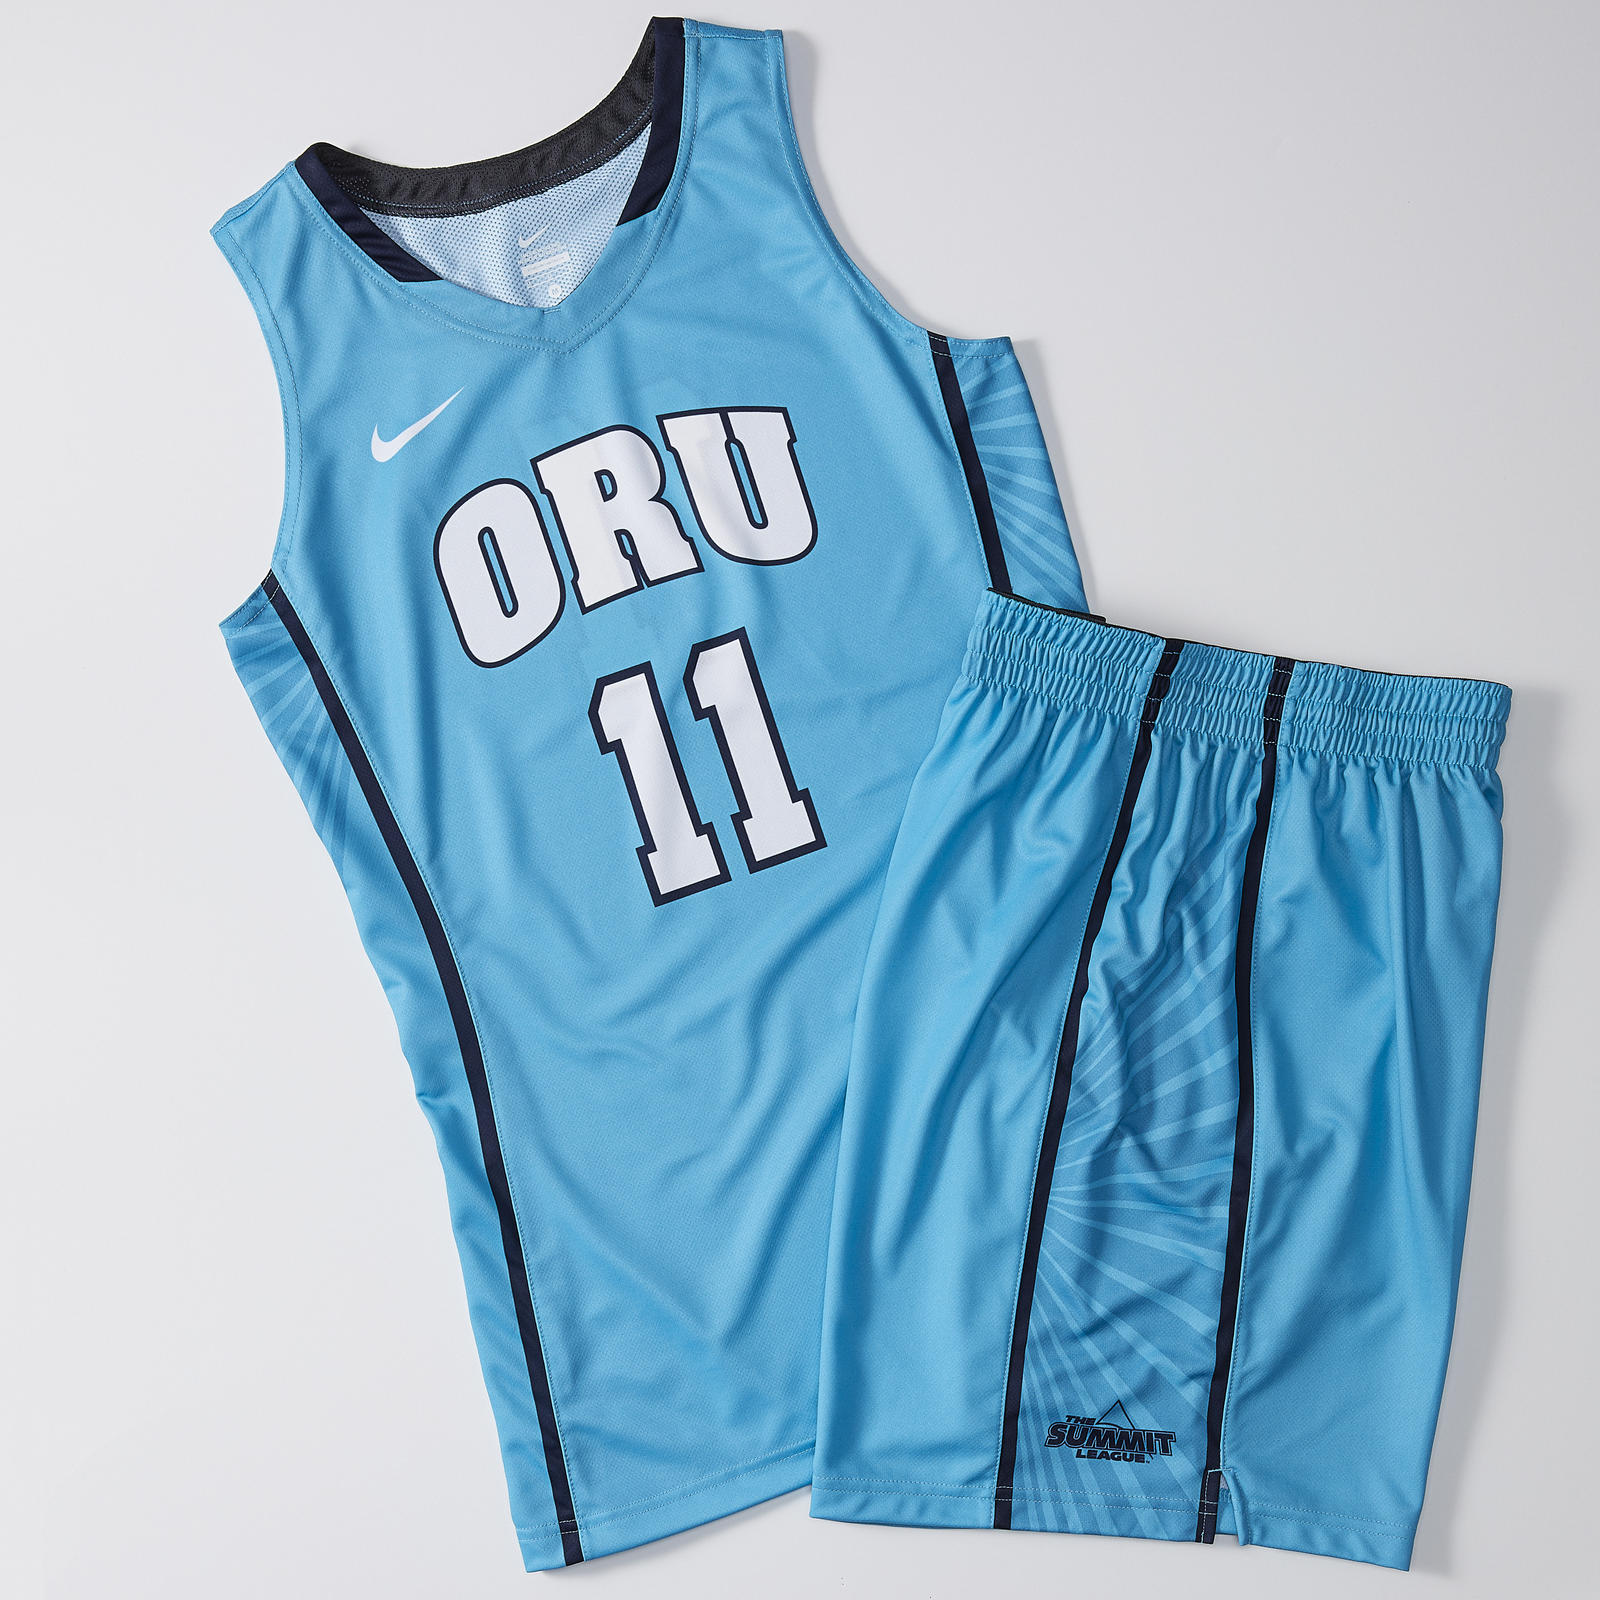 Nike N7 College Basketball Jerseys 2018-19 - Nike News